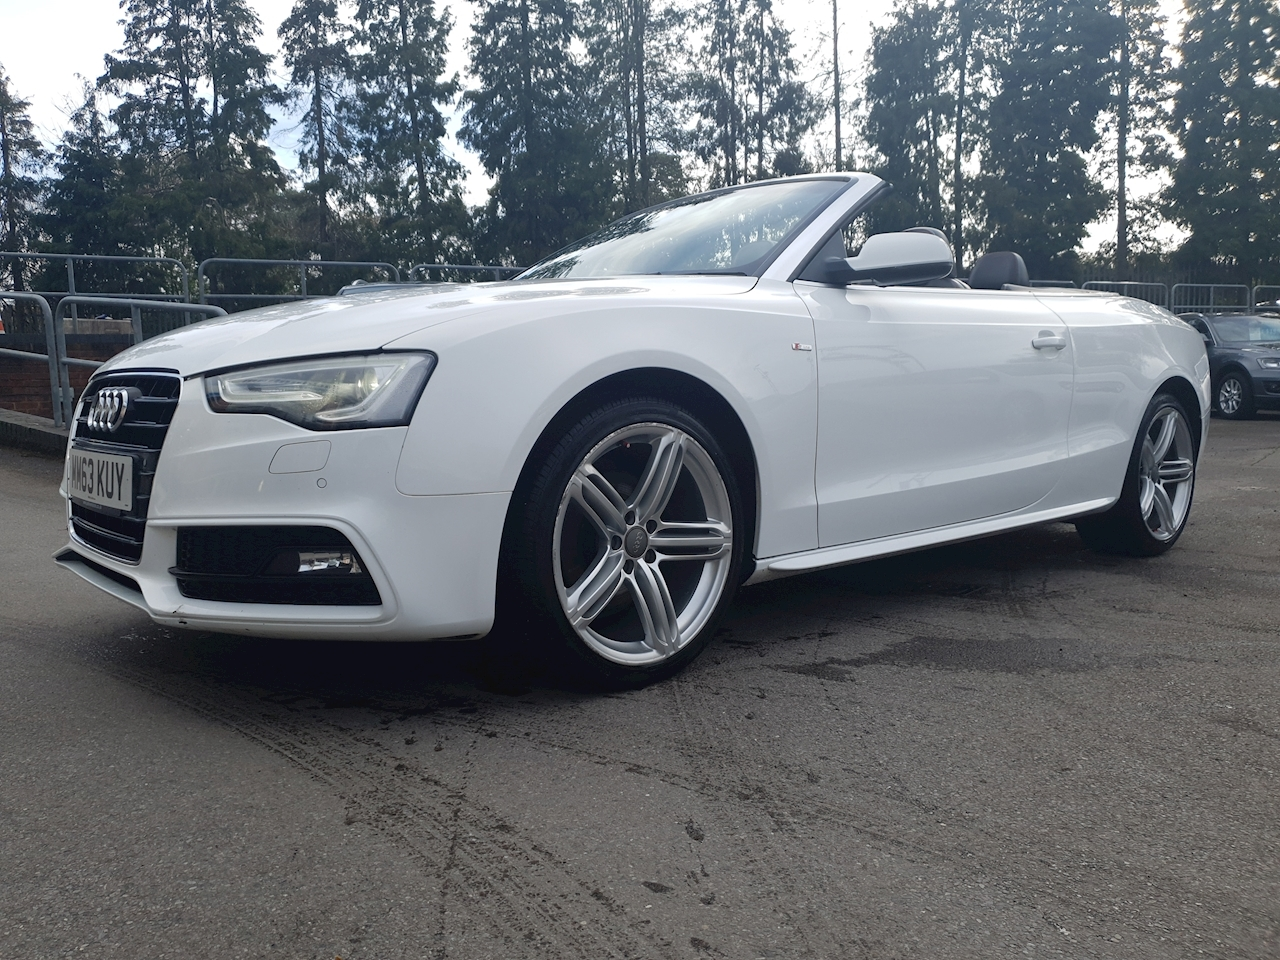 Audi 1.8 TFSI S line Special Edition ( TWO TONE LEATHER) Cabriolet 2dr Petrol Manual (143 g/km, 168 bhp)